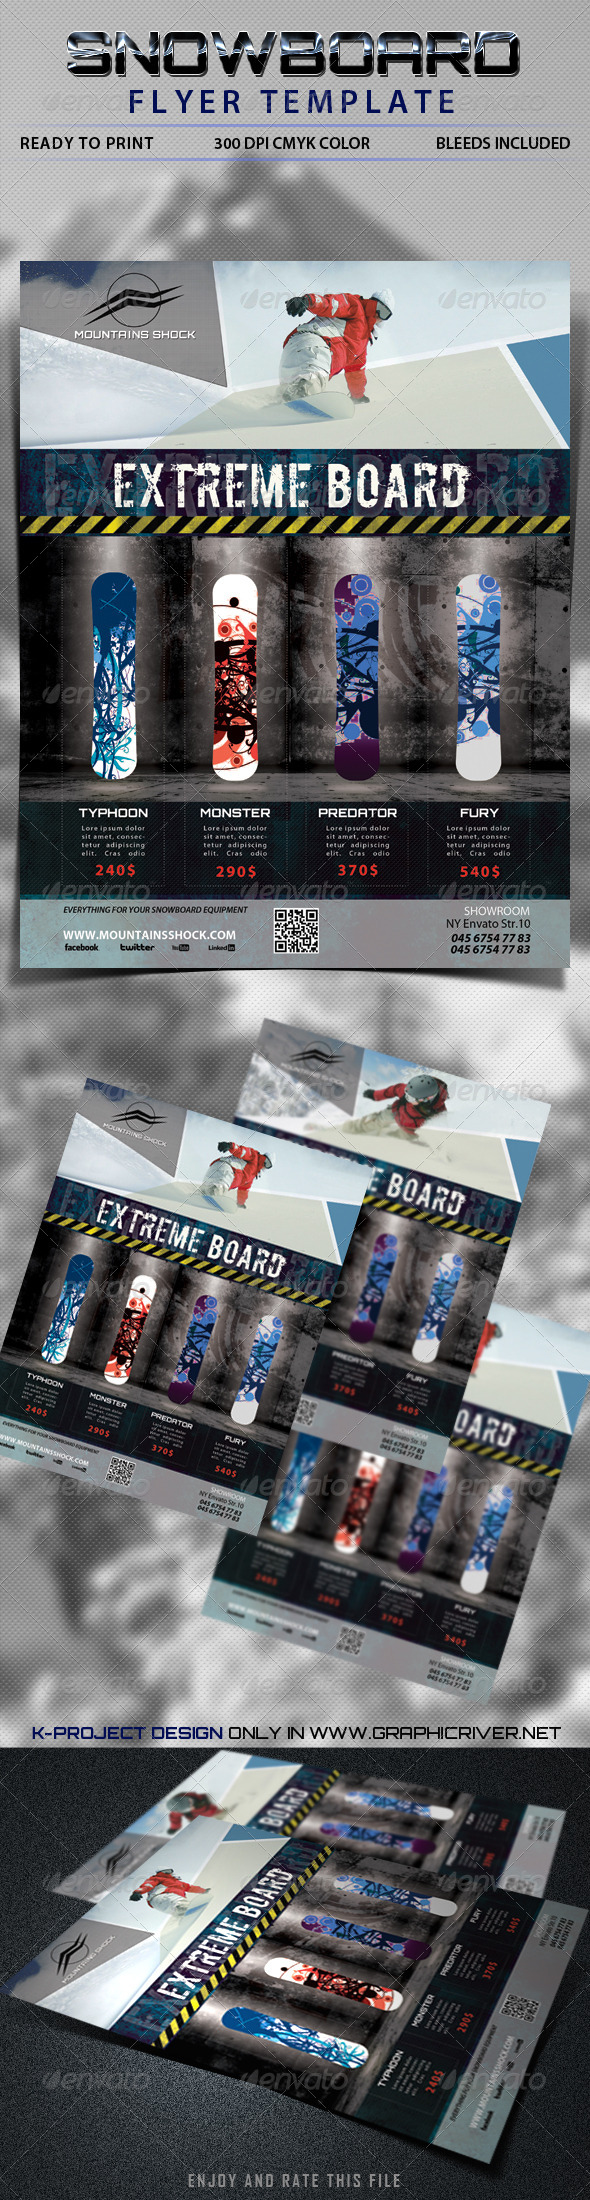 GraphicRiver Snowboard Flyer Template 5802678